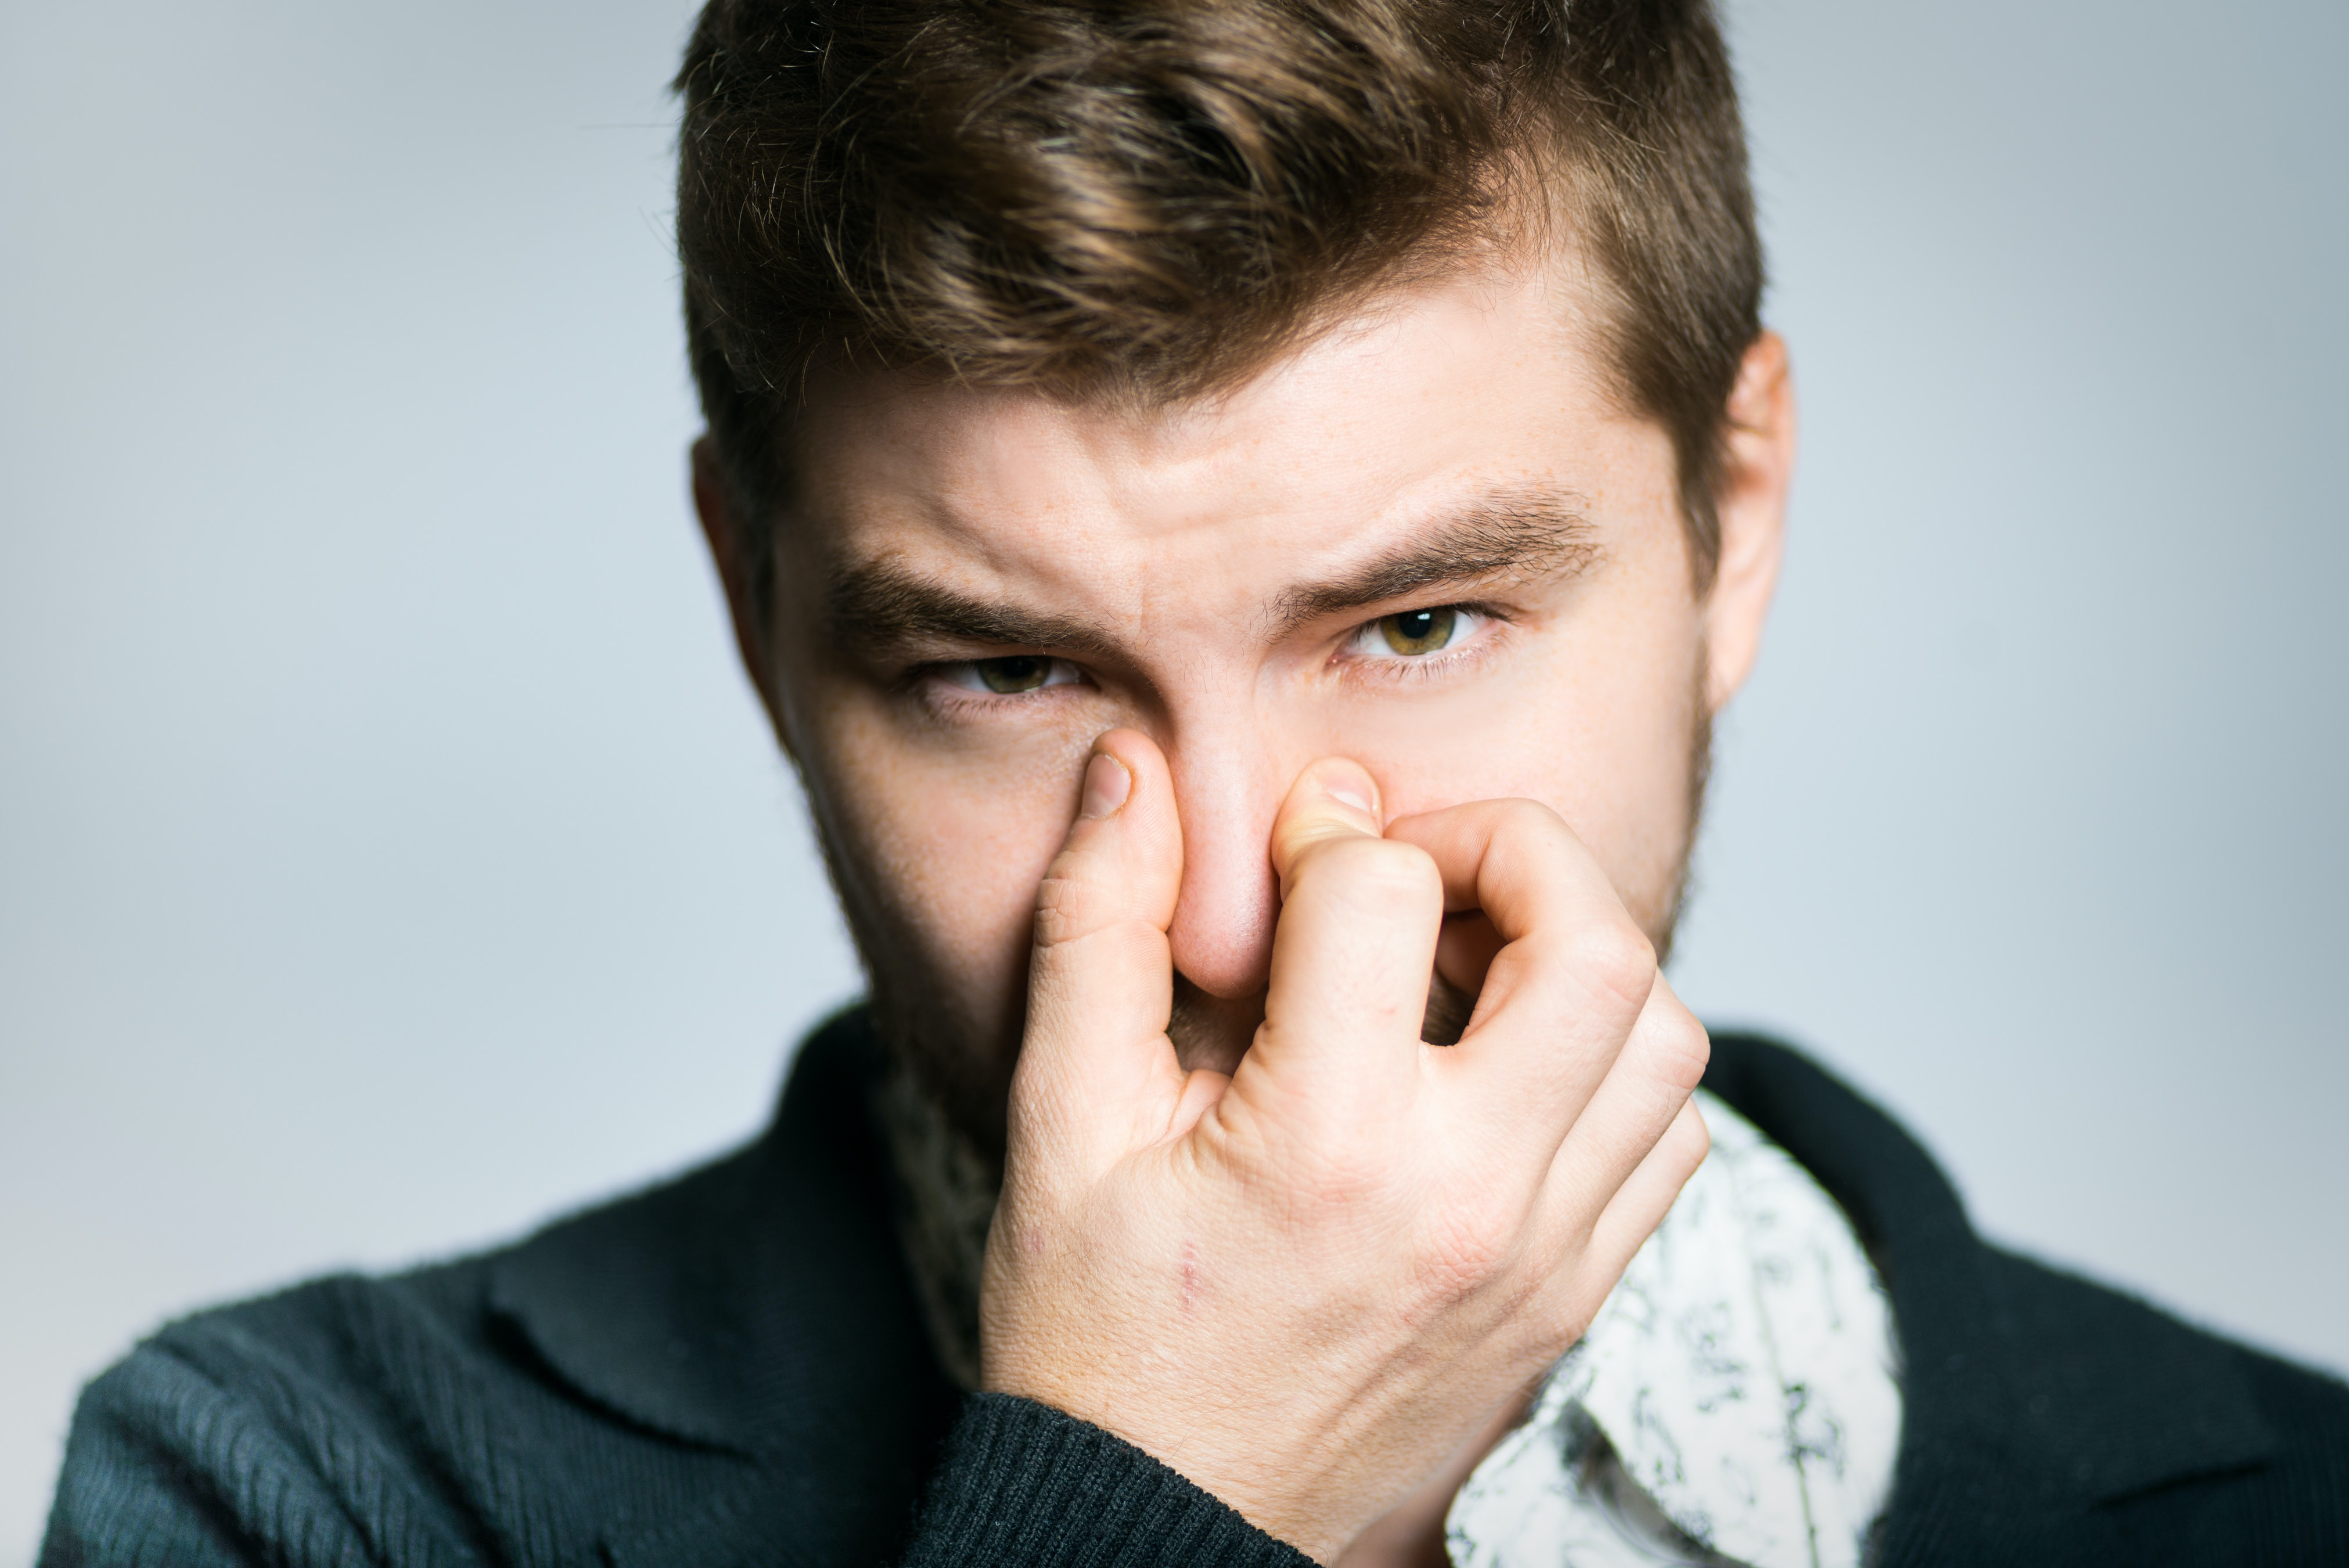 An image depicting a person suffering from swollen nose symptoms